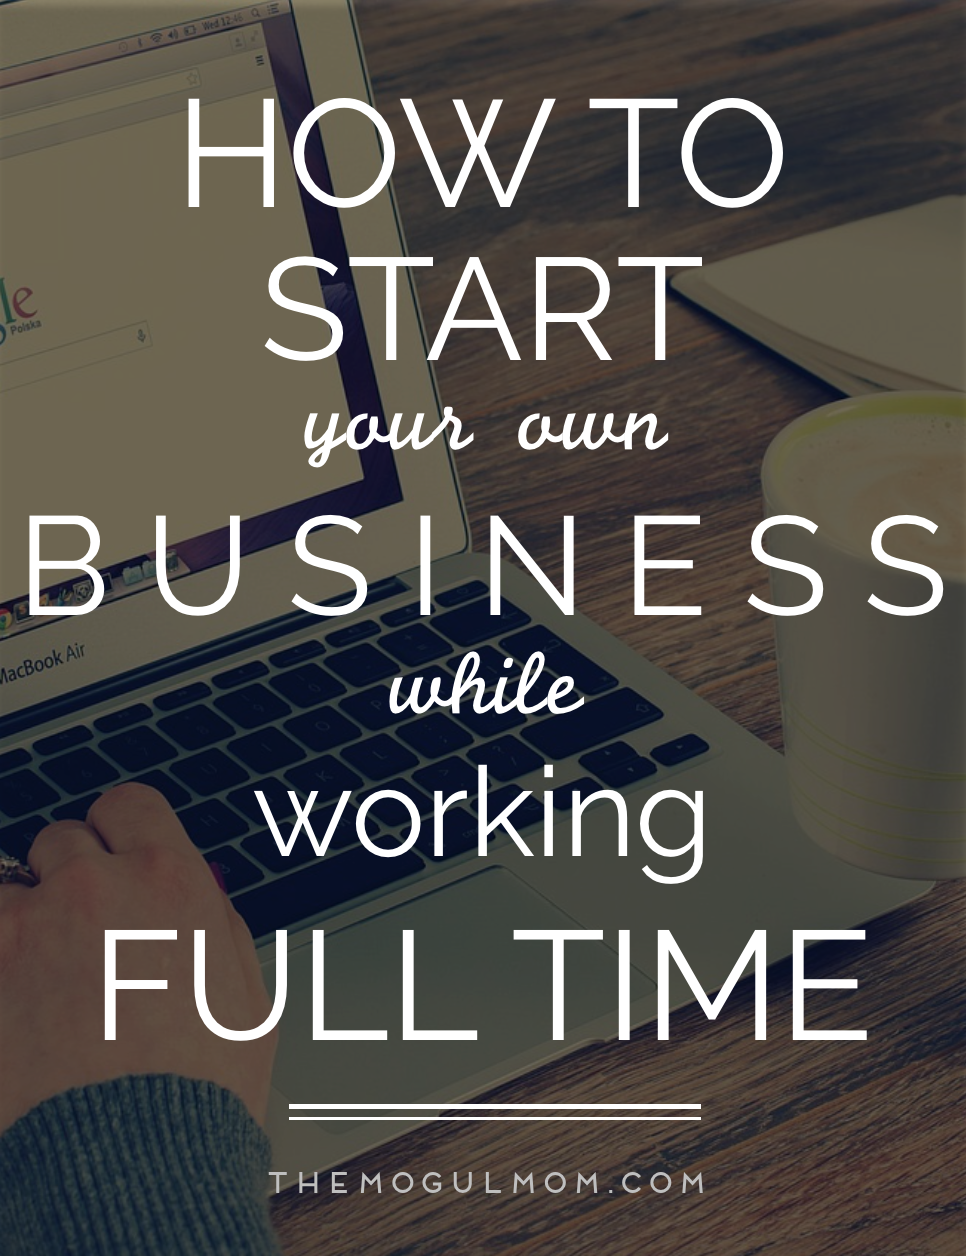 How To Start Your Own Business While Working Full-Time